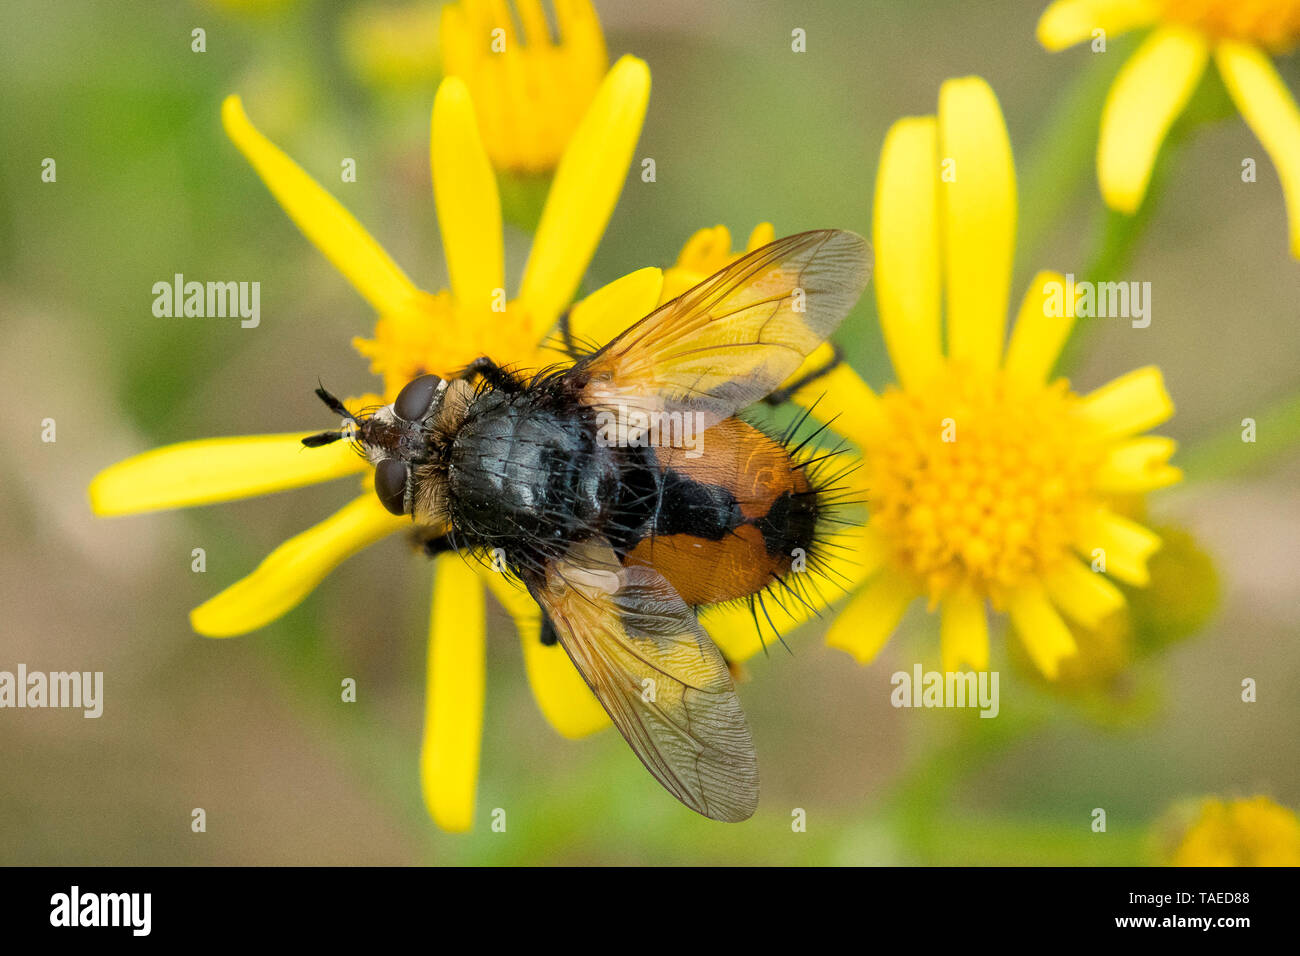 Tachinid fly (Nowickia ferox) on Common Ragwort flower, Bouxieres aux dames, Lorraine, France Stock Photo